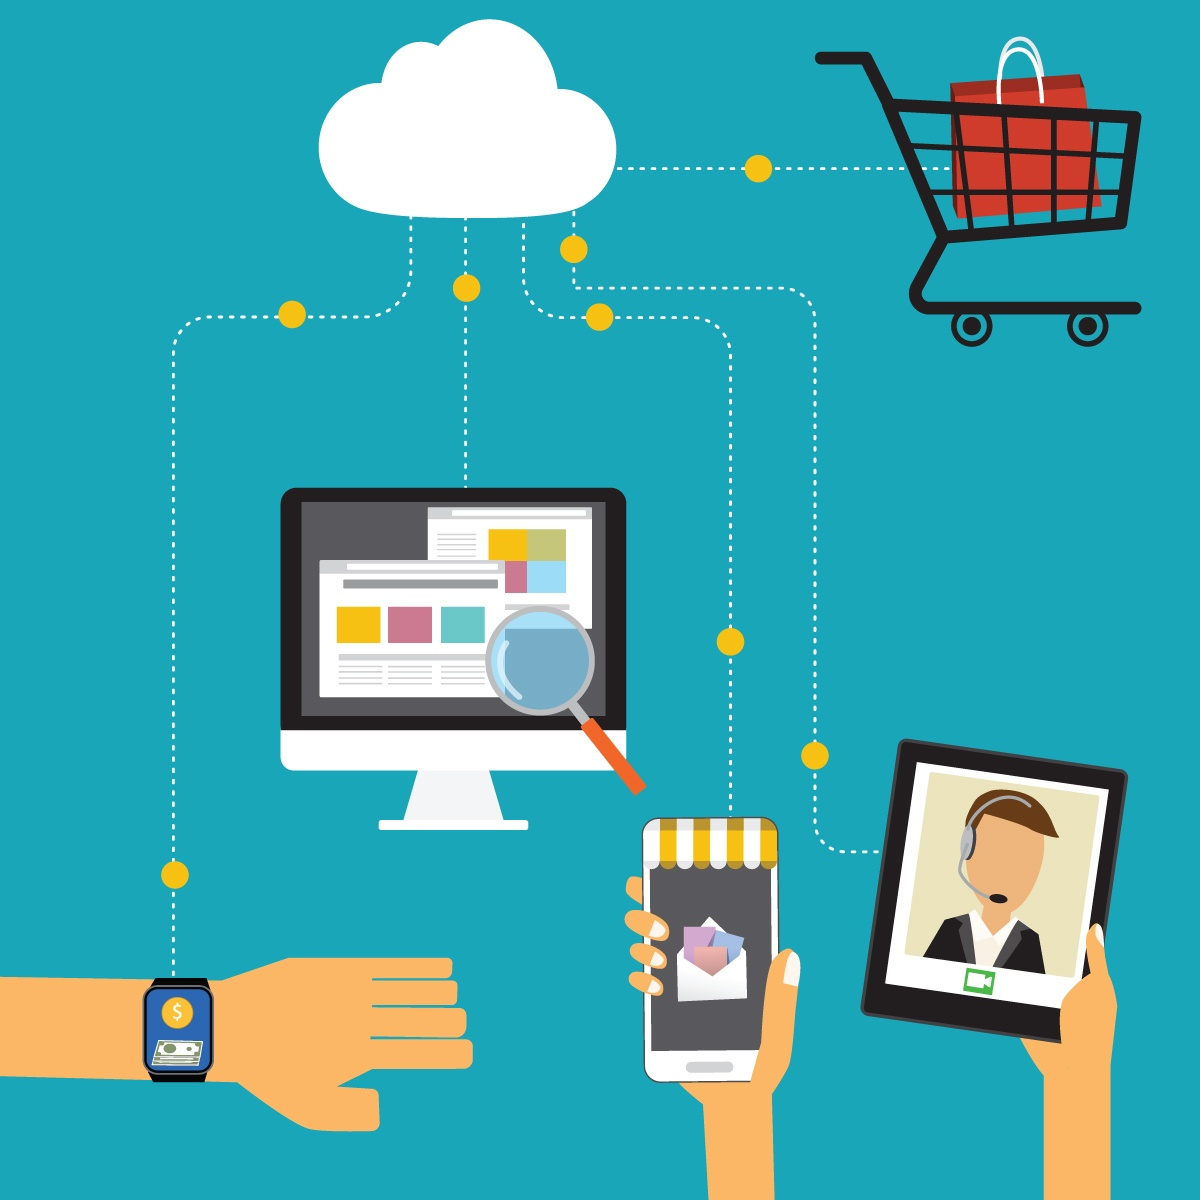 Your omnichannel order management system should provide a seamless customer experience